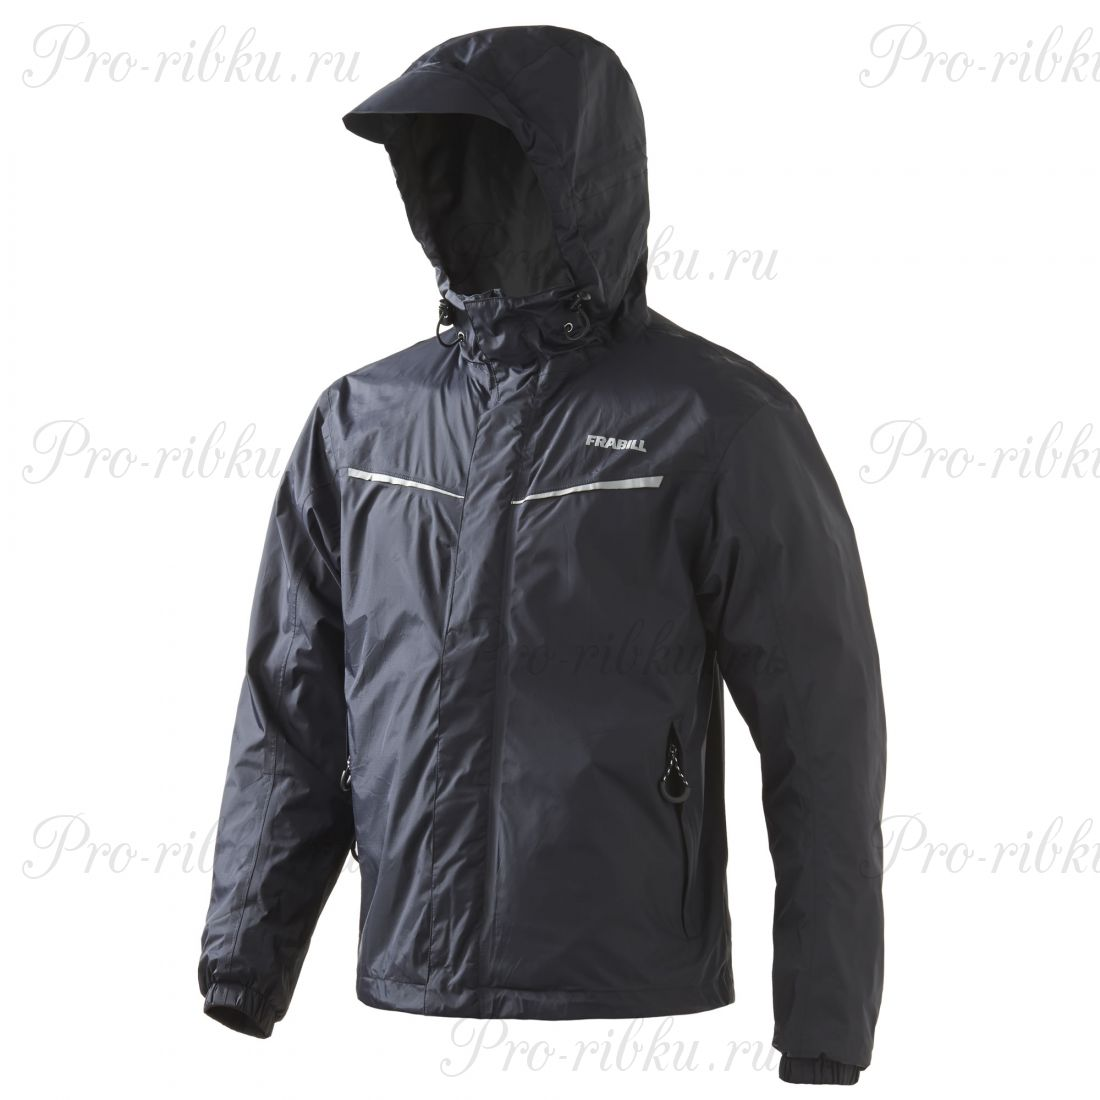 Куртка штормовая FRABILL Stow Jacket Black, р.XL